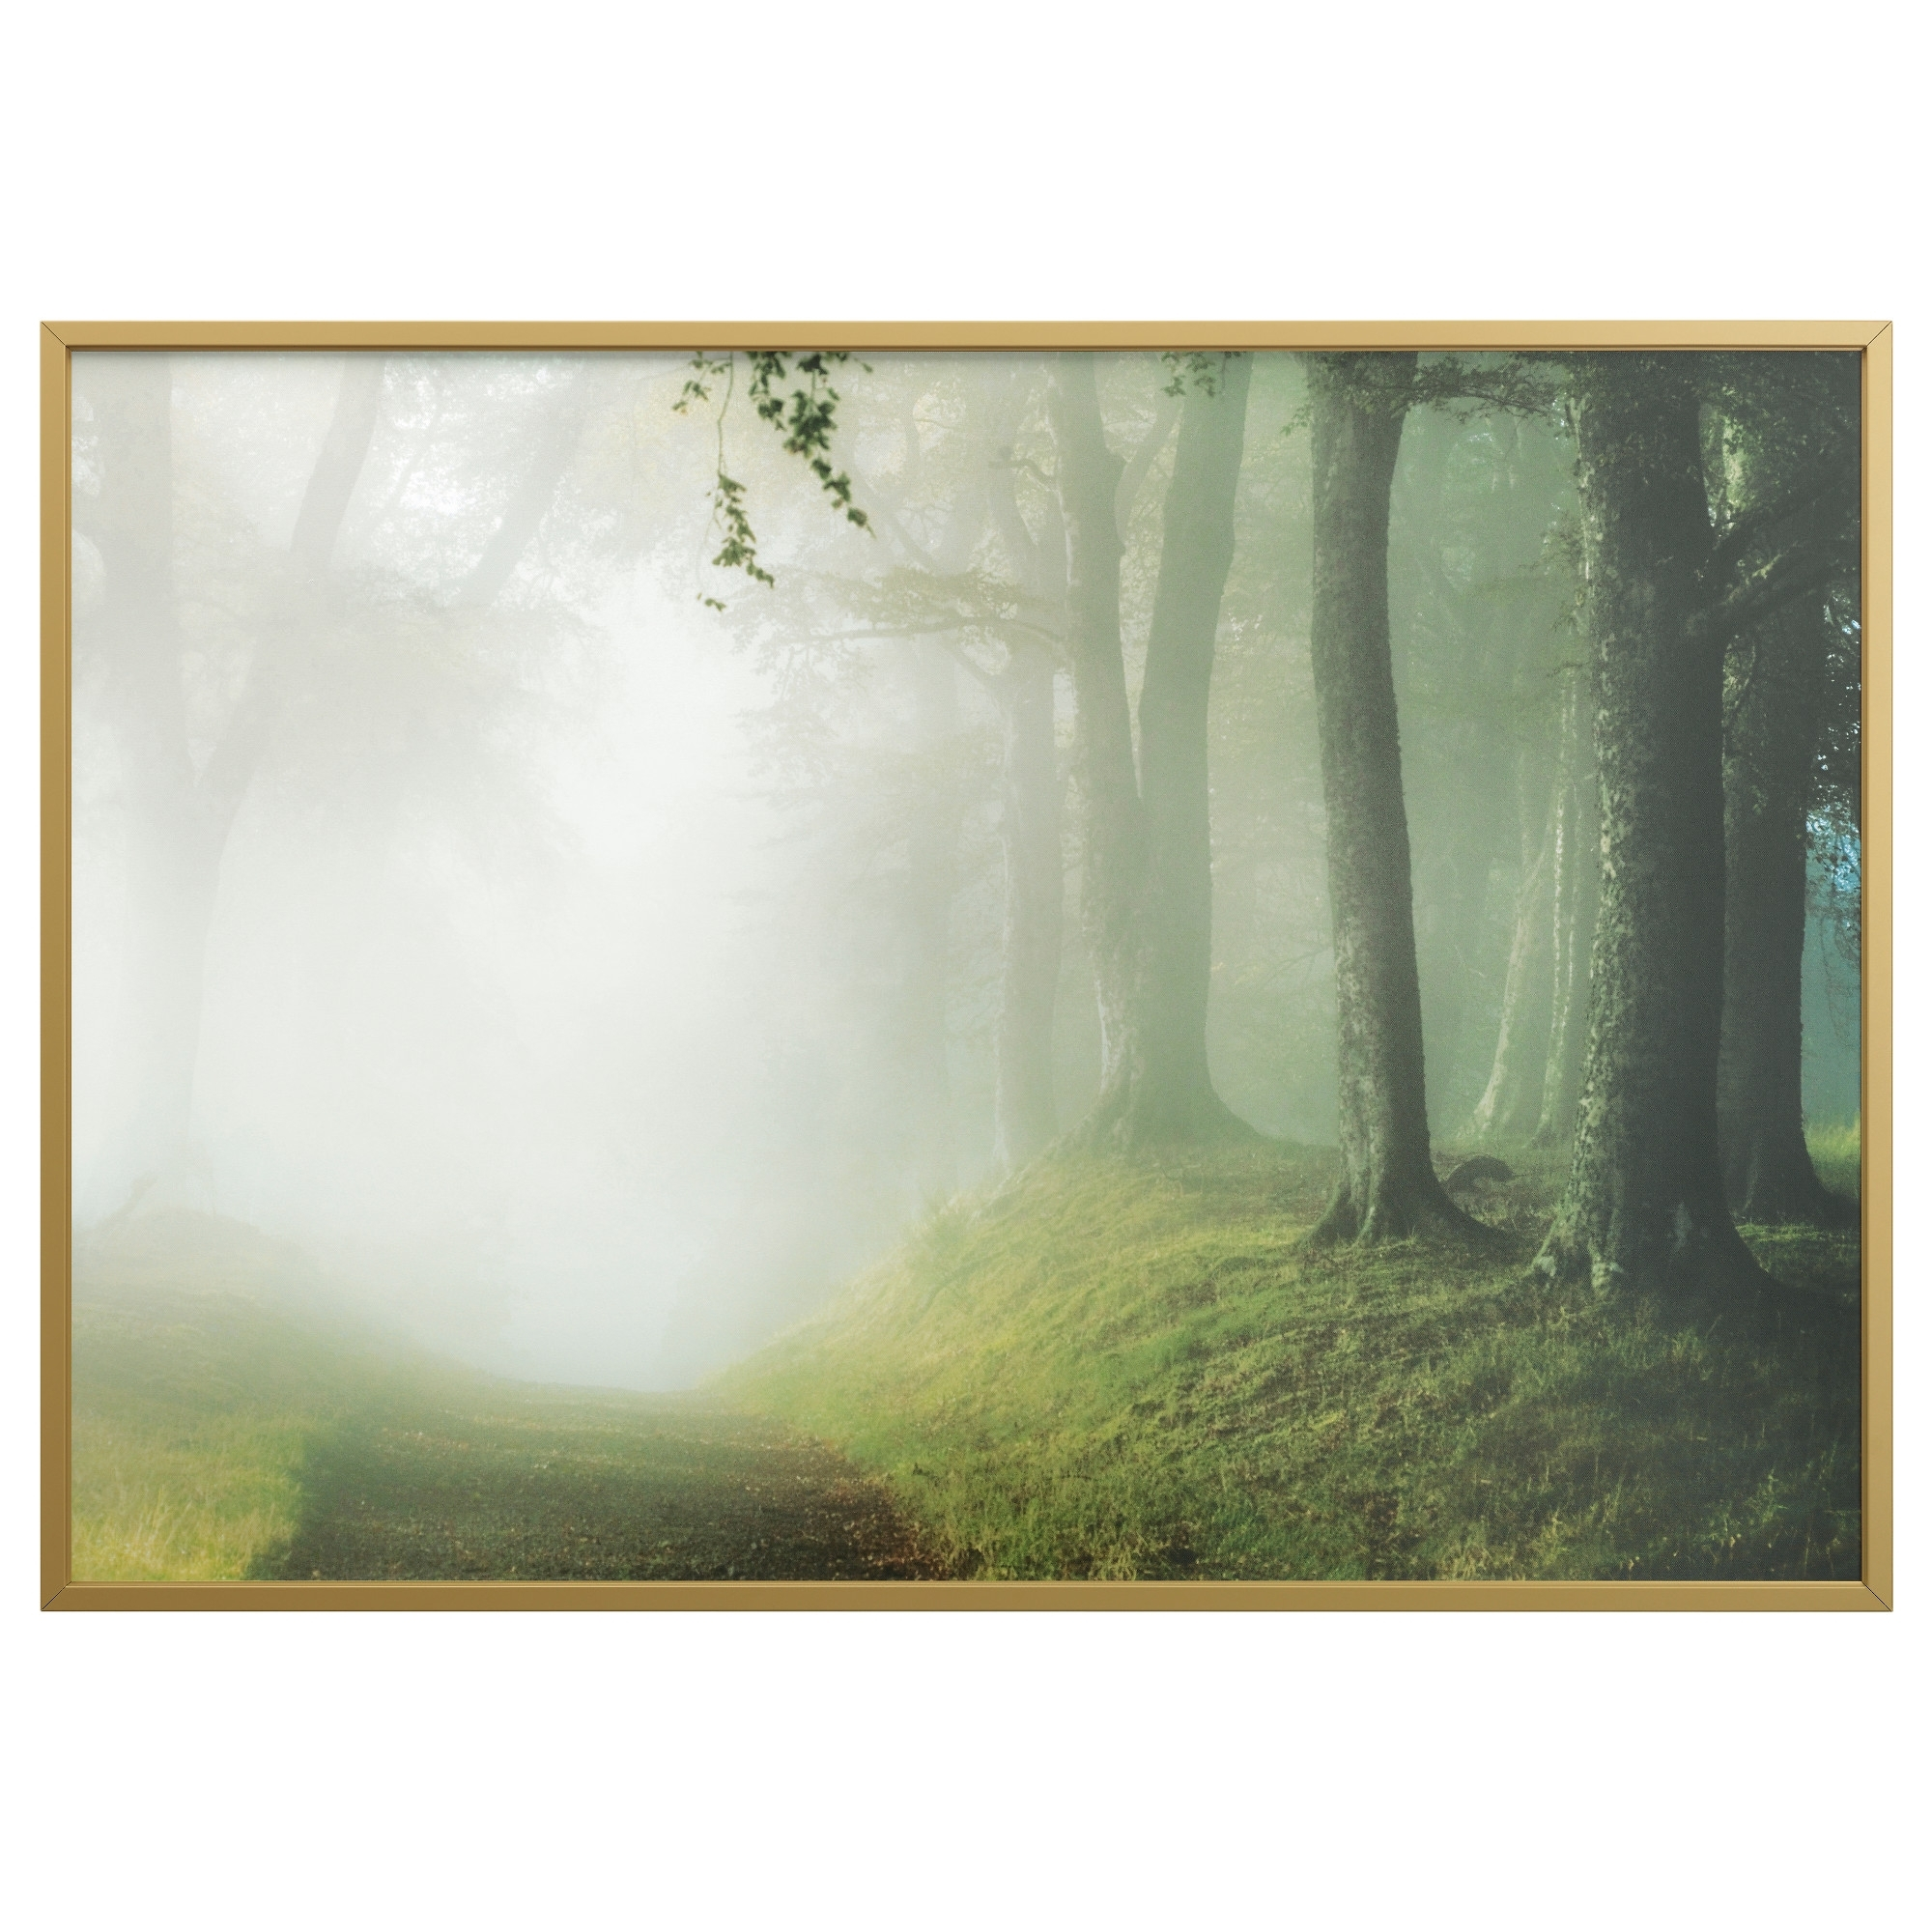 Ikea Canvas Wall Art in Preferred Canvas Prints & Art - Framed Pictures - Ikea